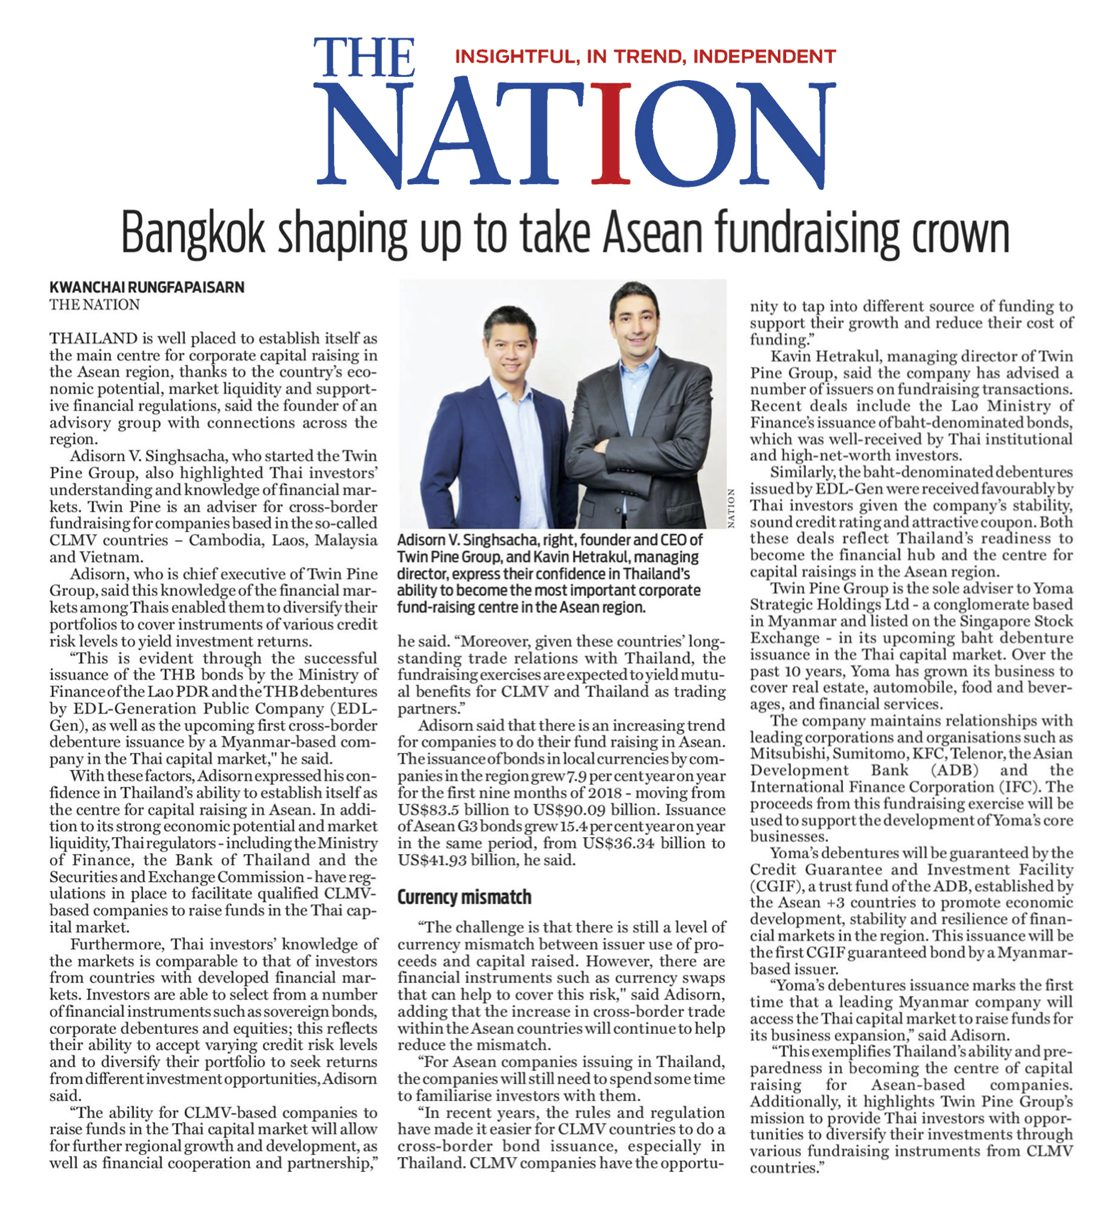 The Nation Newspaper, Business – Bangkok shaping up to take ASEAN fundraising crown